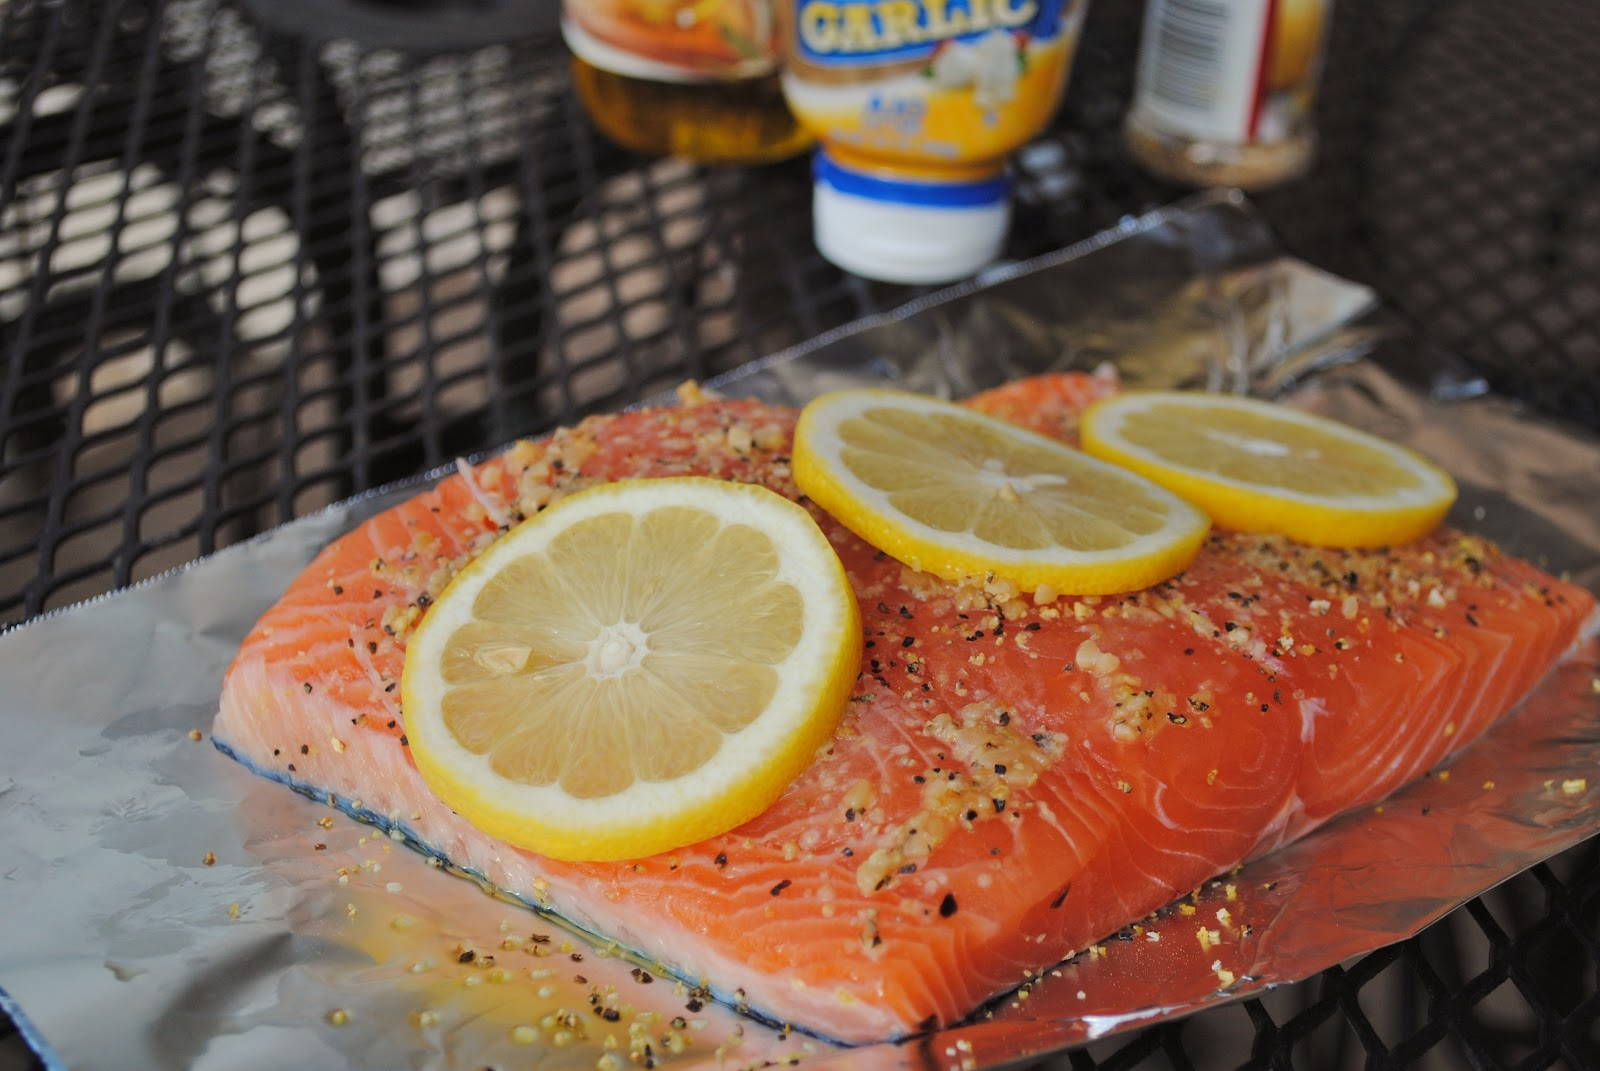 1t Lemon Pepper Turn Your Grill To About 400f And Cook The Salmon For  About 1214 Minutes, Covered